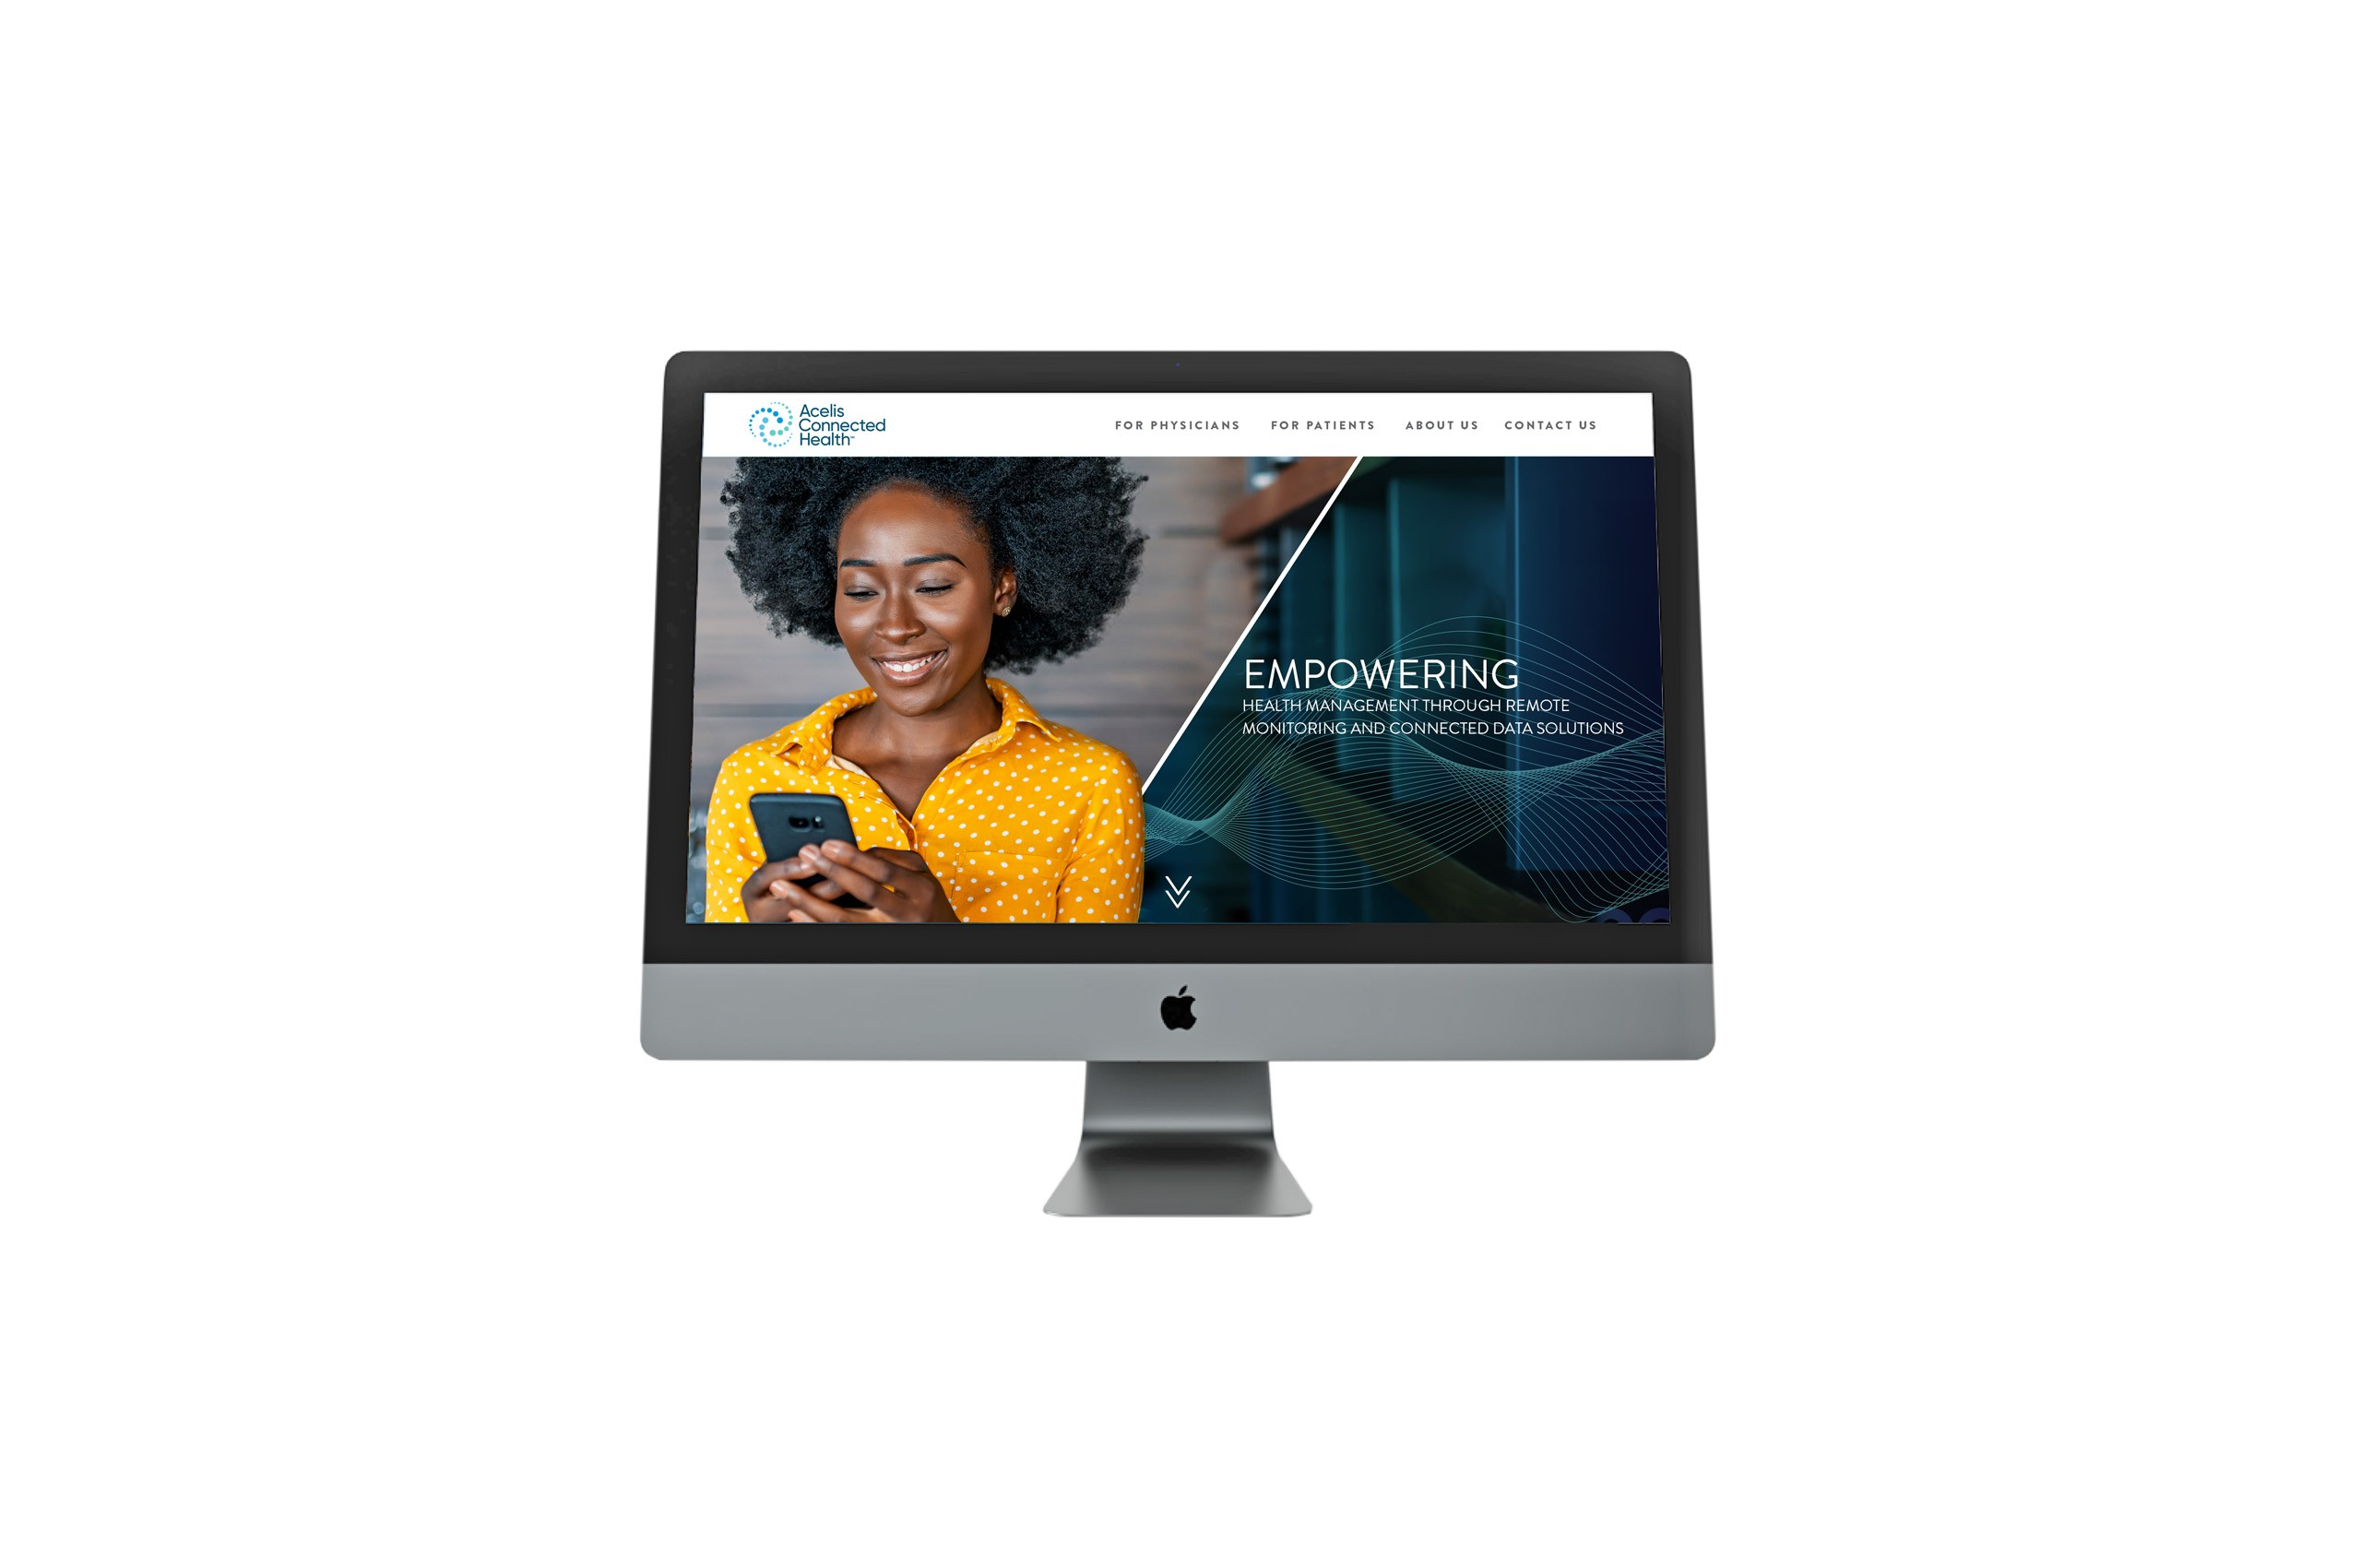 ACELIS CONNECTED HEALTH WEBSITE